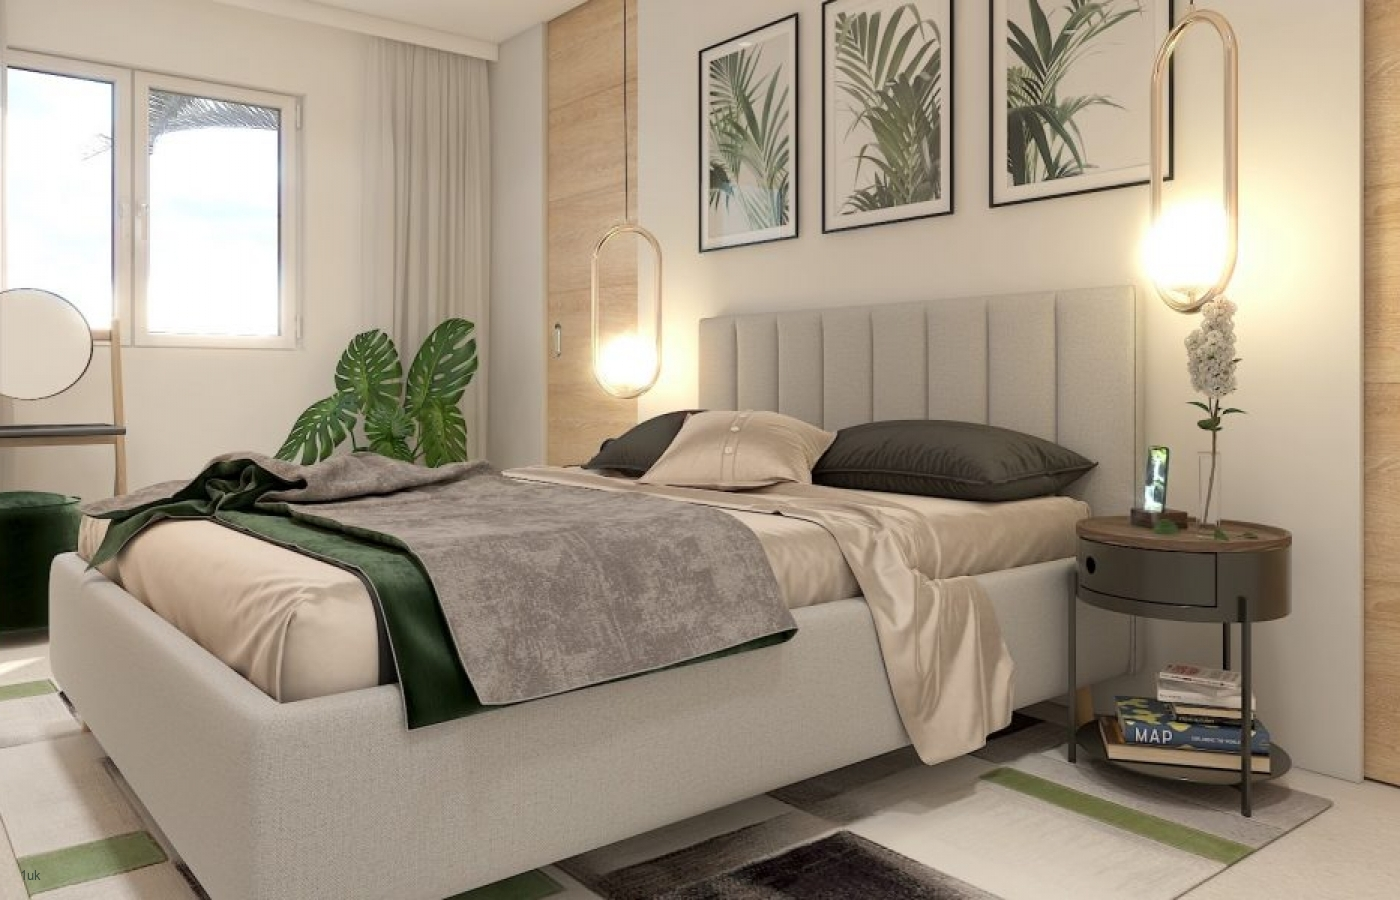 Bedroom with storage and large windows